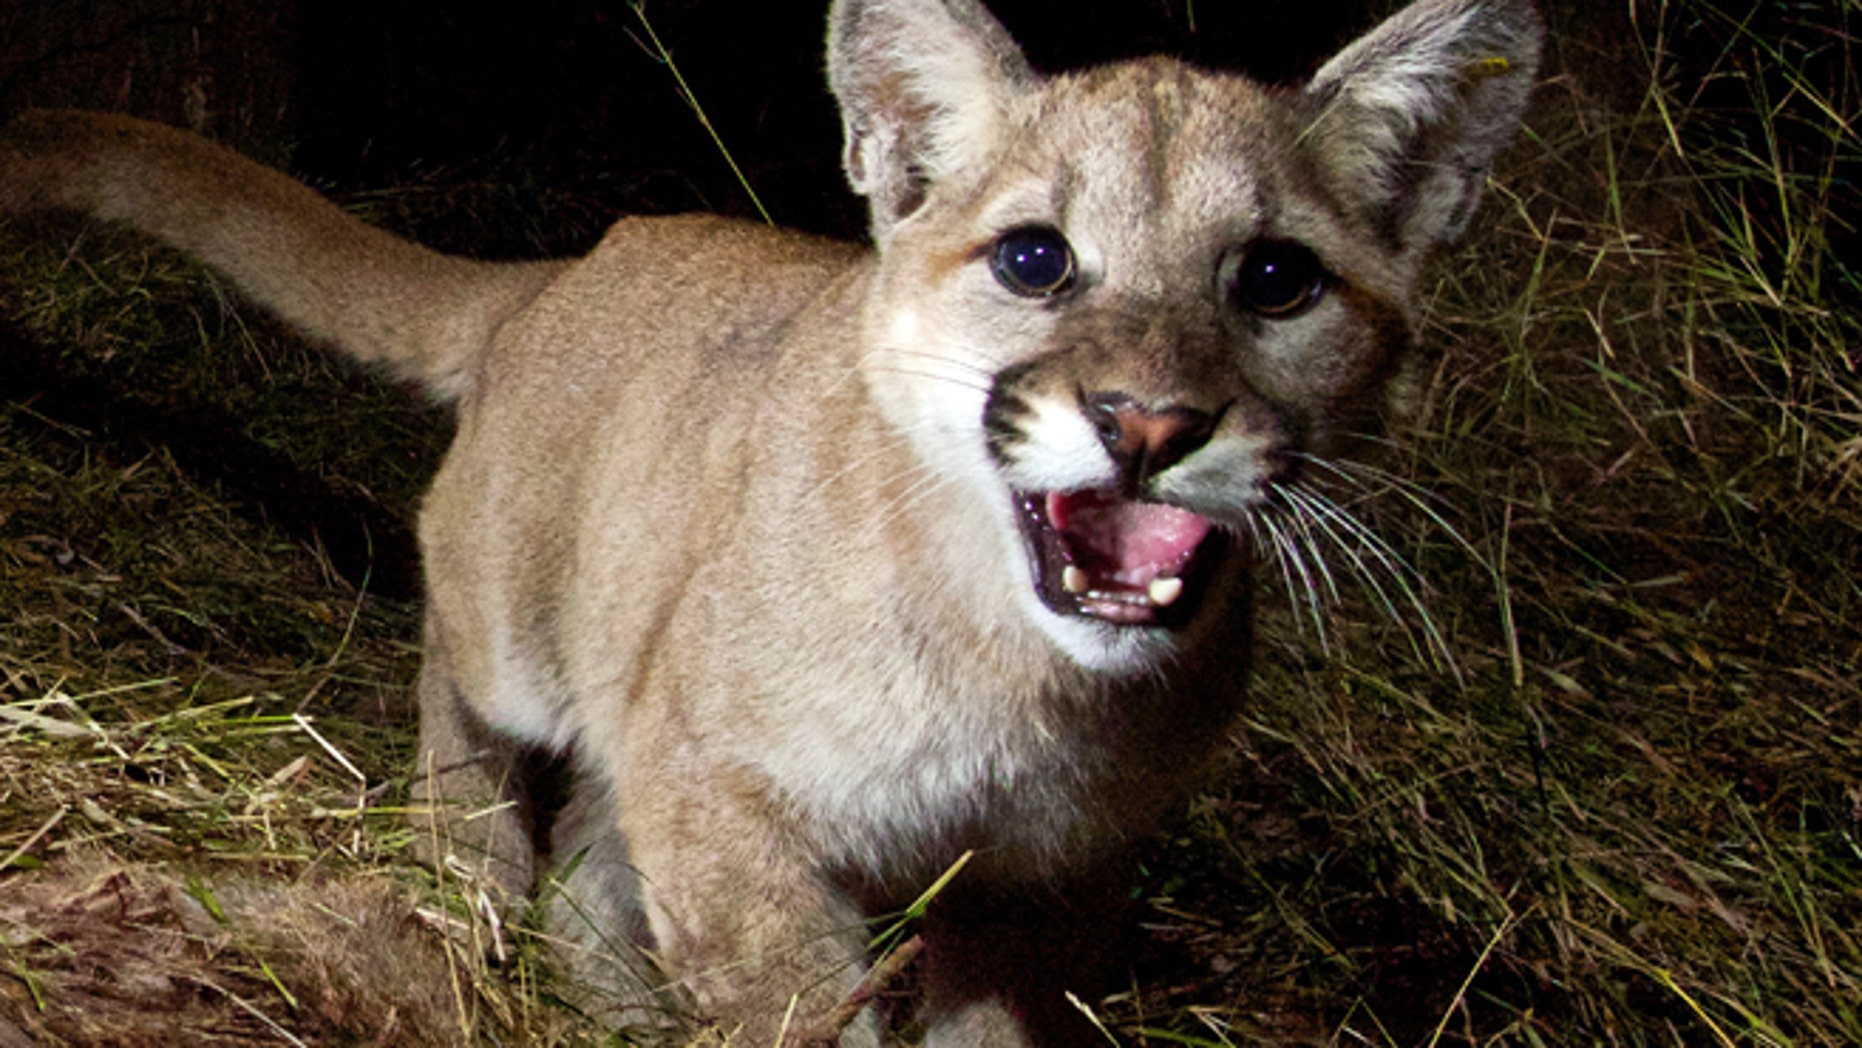 A remote camera recently captured photos of a mountain lion and her 10-month-old kittens, P-28 and P-30, feeding on a kill in Malibu Creek State Park, Calif. Warning: Pictures that follow contain graphic content.